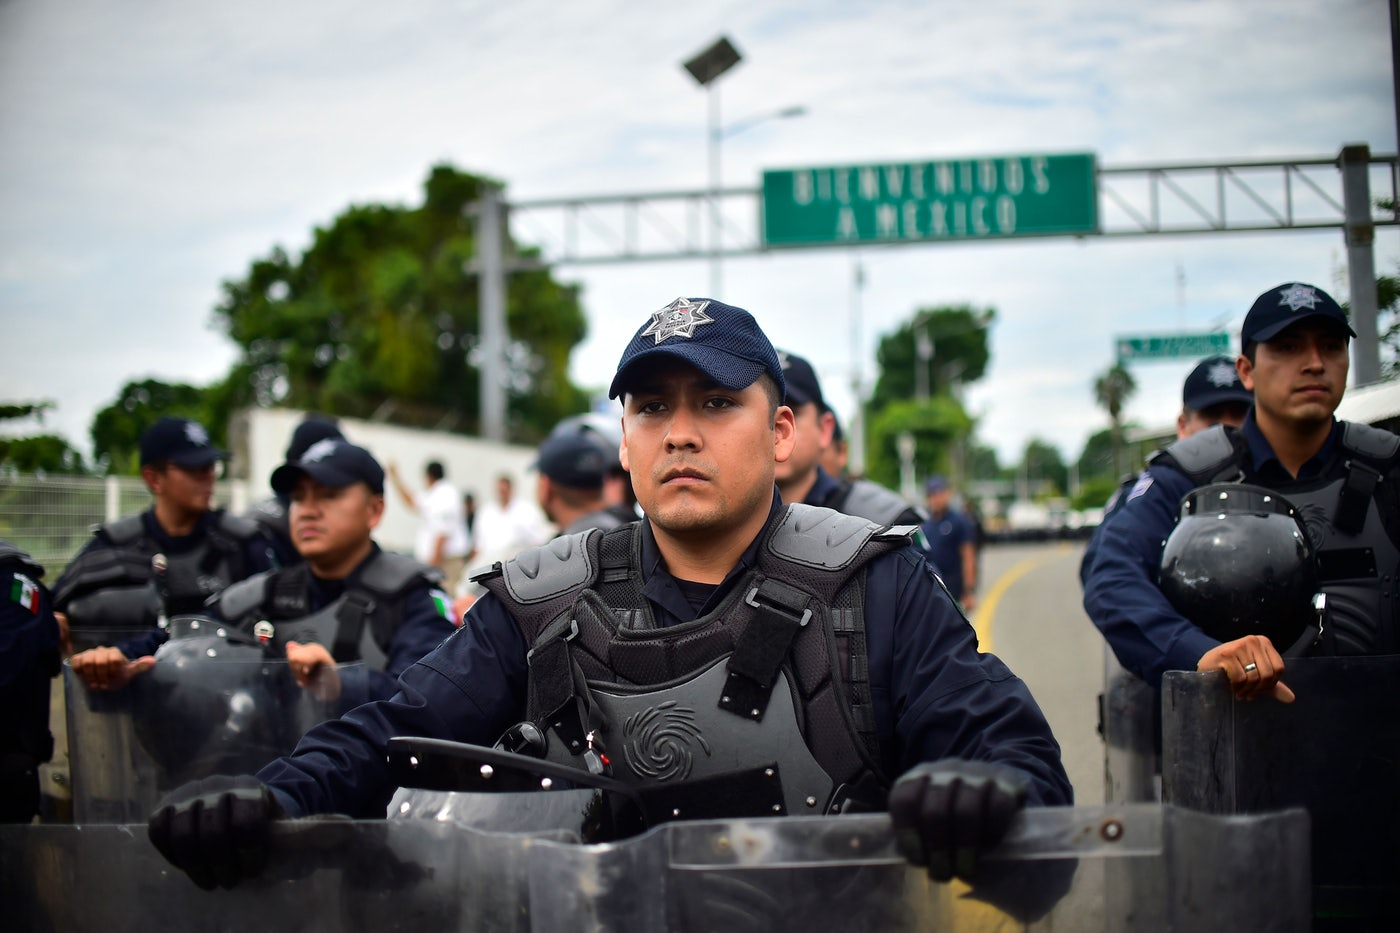 Mexican Federal Police officers get ready for the arrival of a caravan of Honduran migrants heading to the U.S.